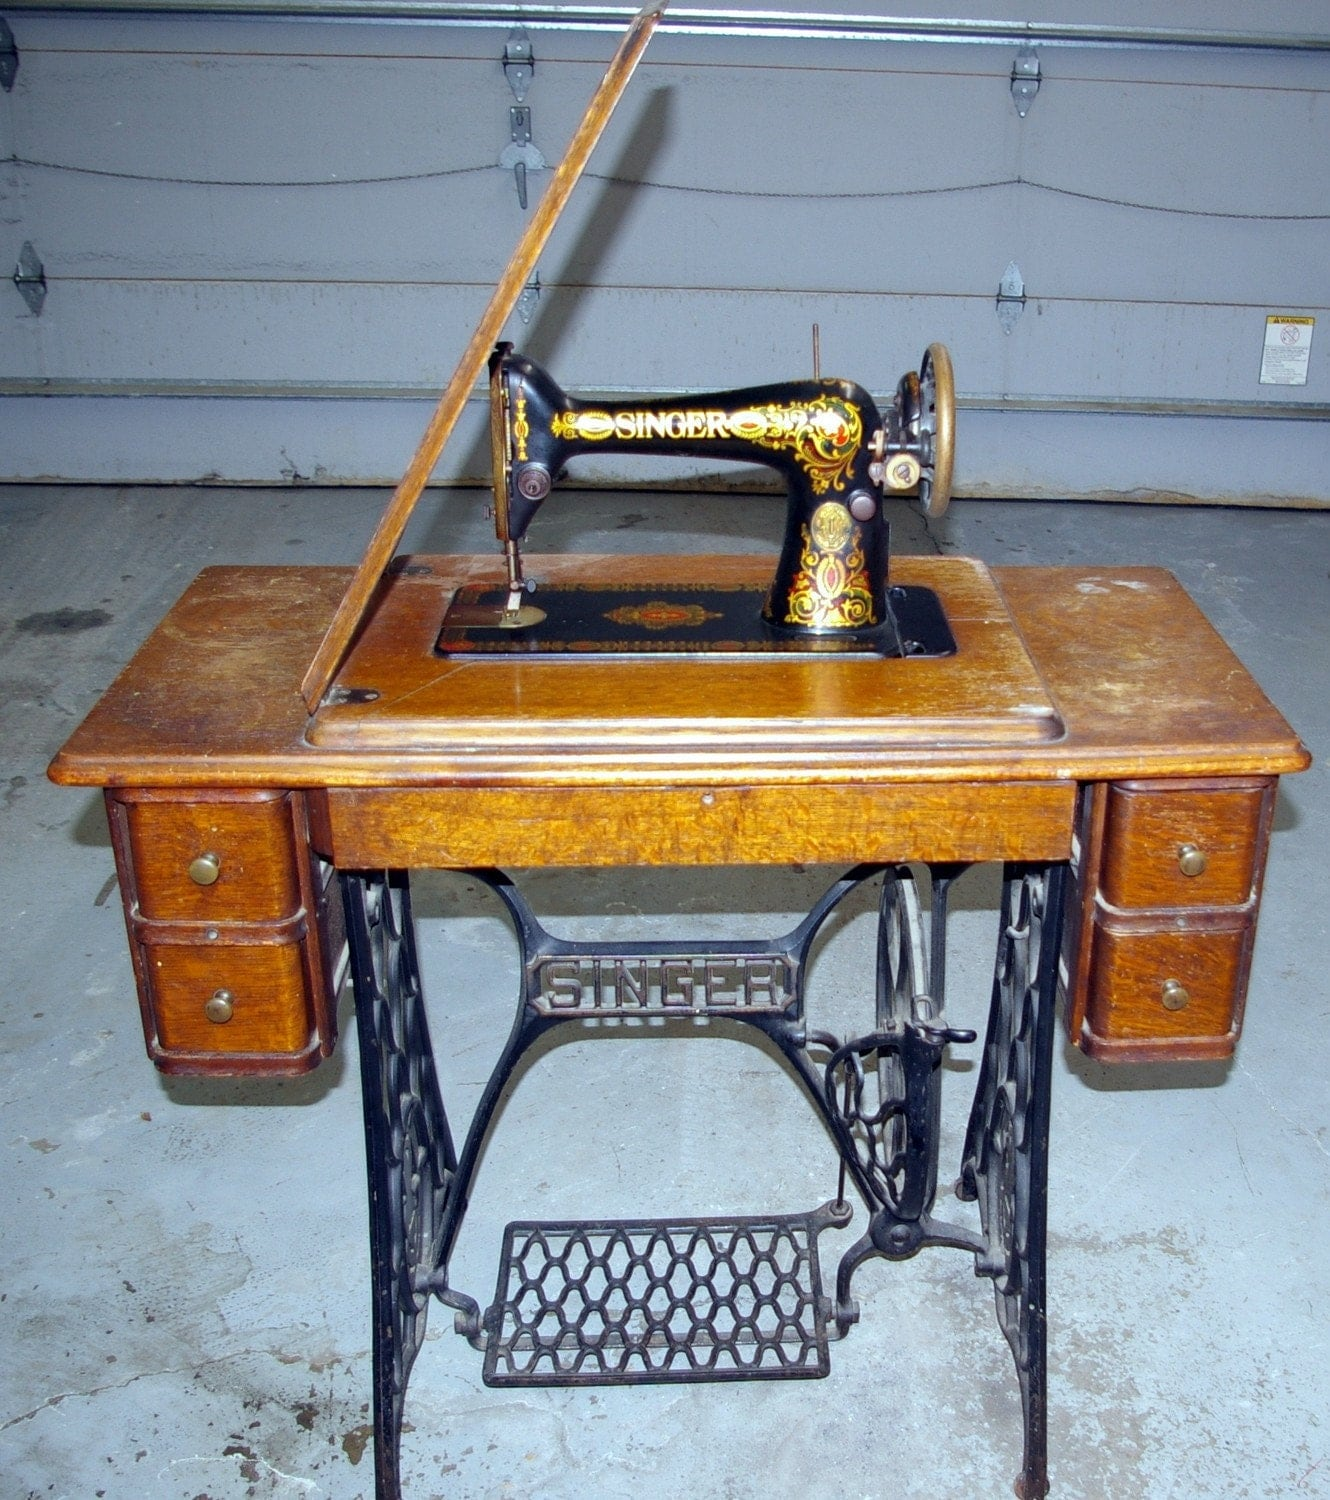 301 Moved Permanently - Antique Singer Sewing Machine With Cabinet - Nagpurentrepreneurs